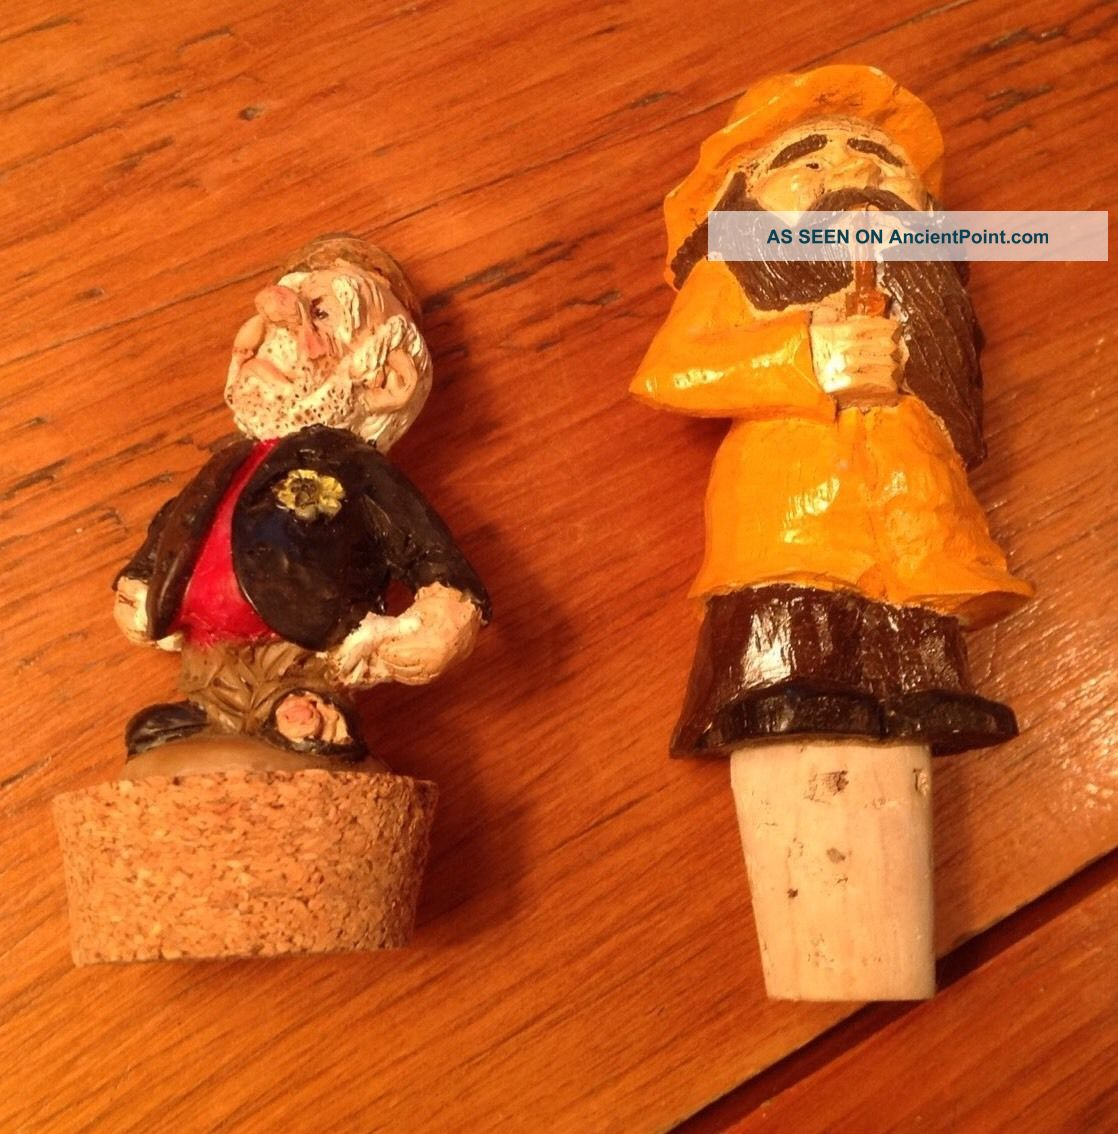 2 Folk Art Hand Carved Bottle Cork Fisherman Signed Tunturi And ? Resin Bum Carved Figures photo